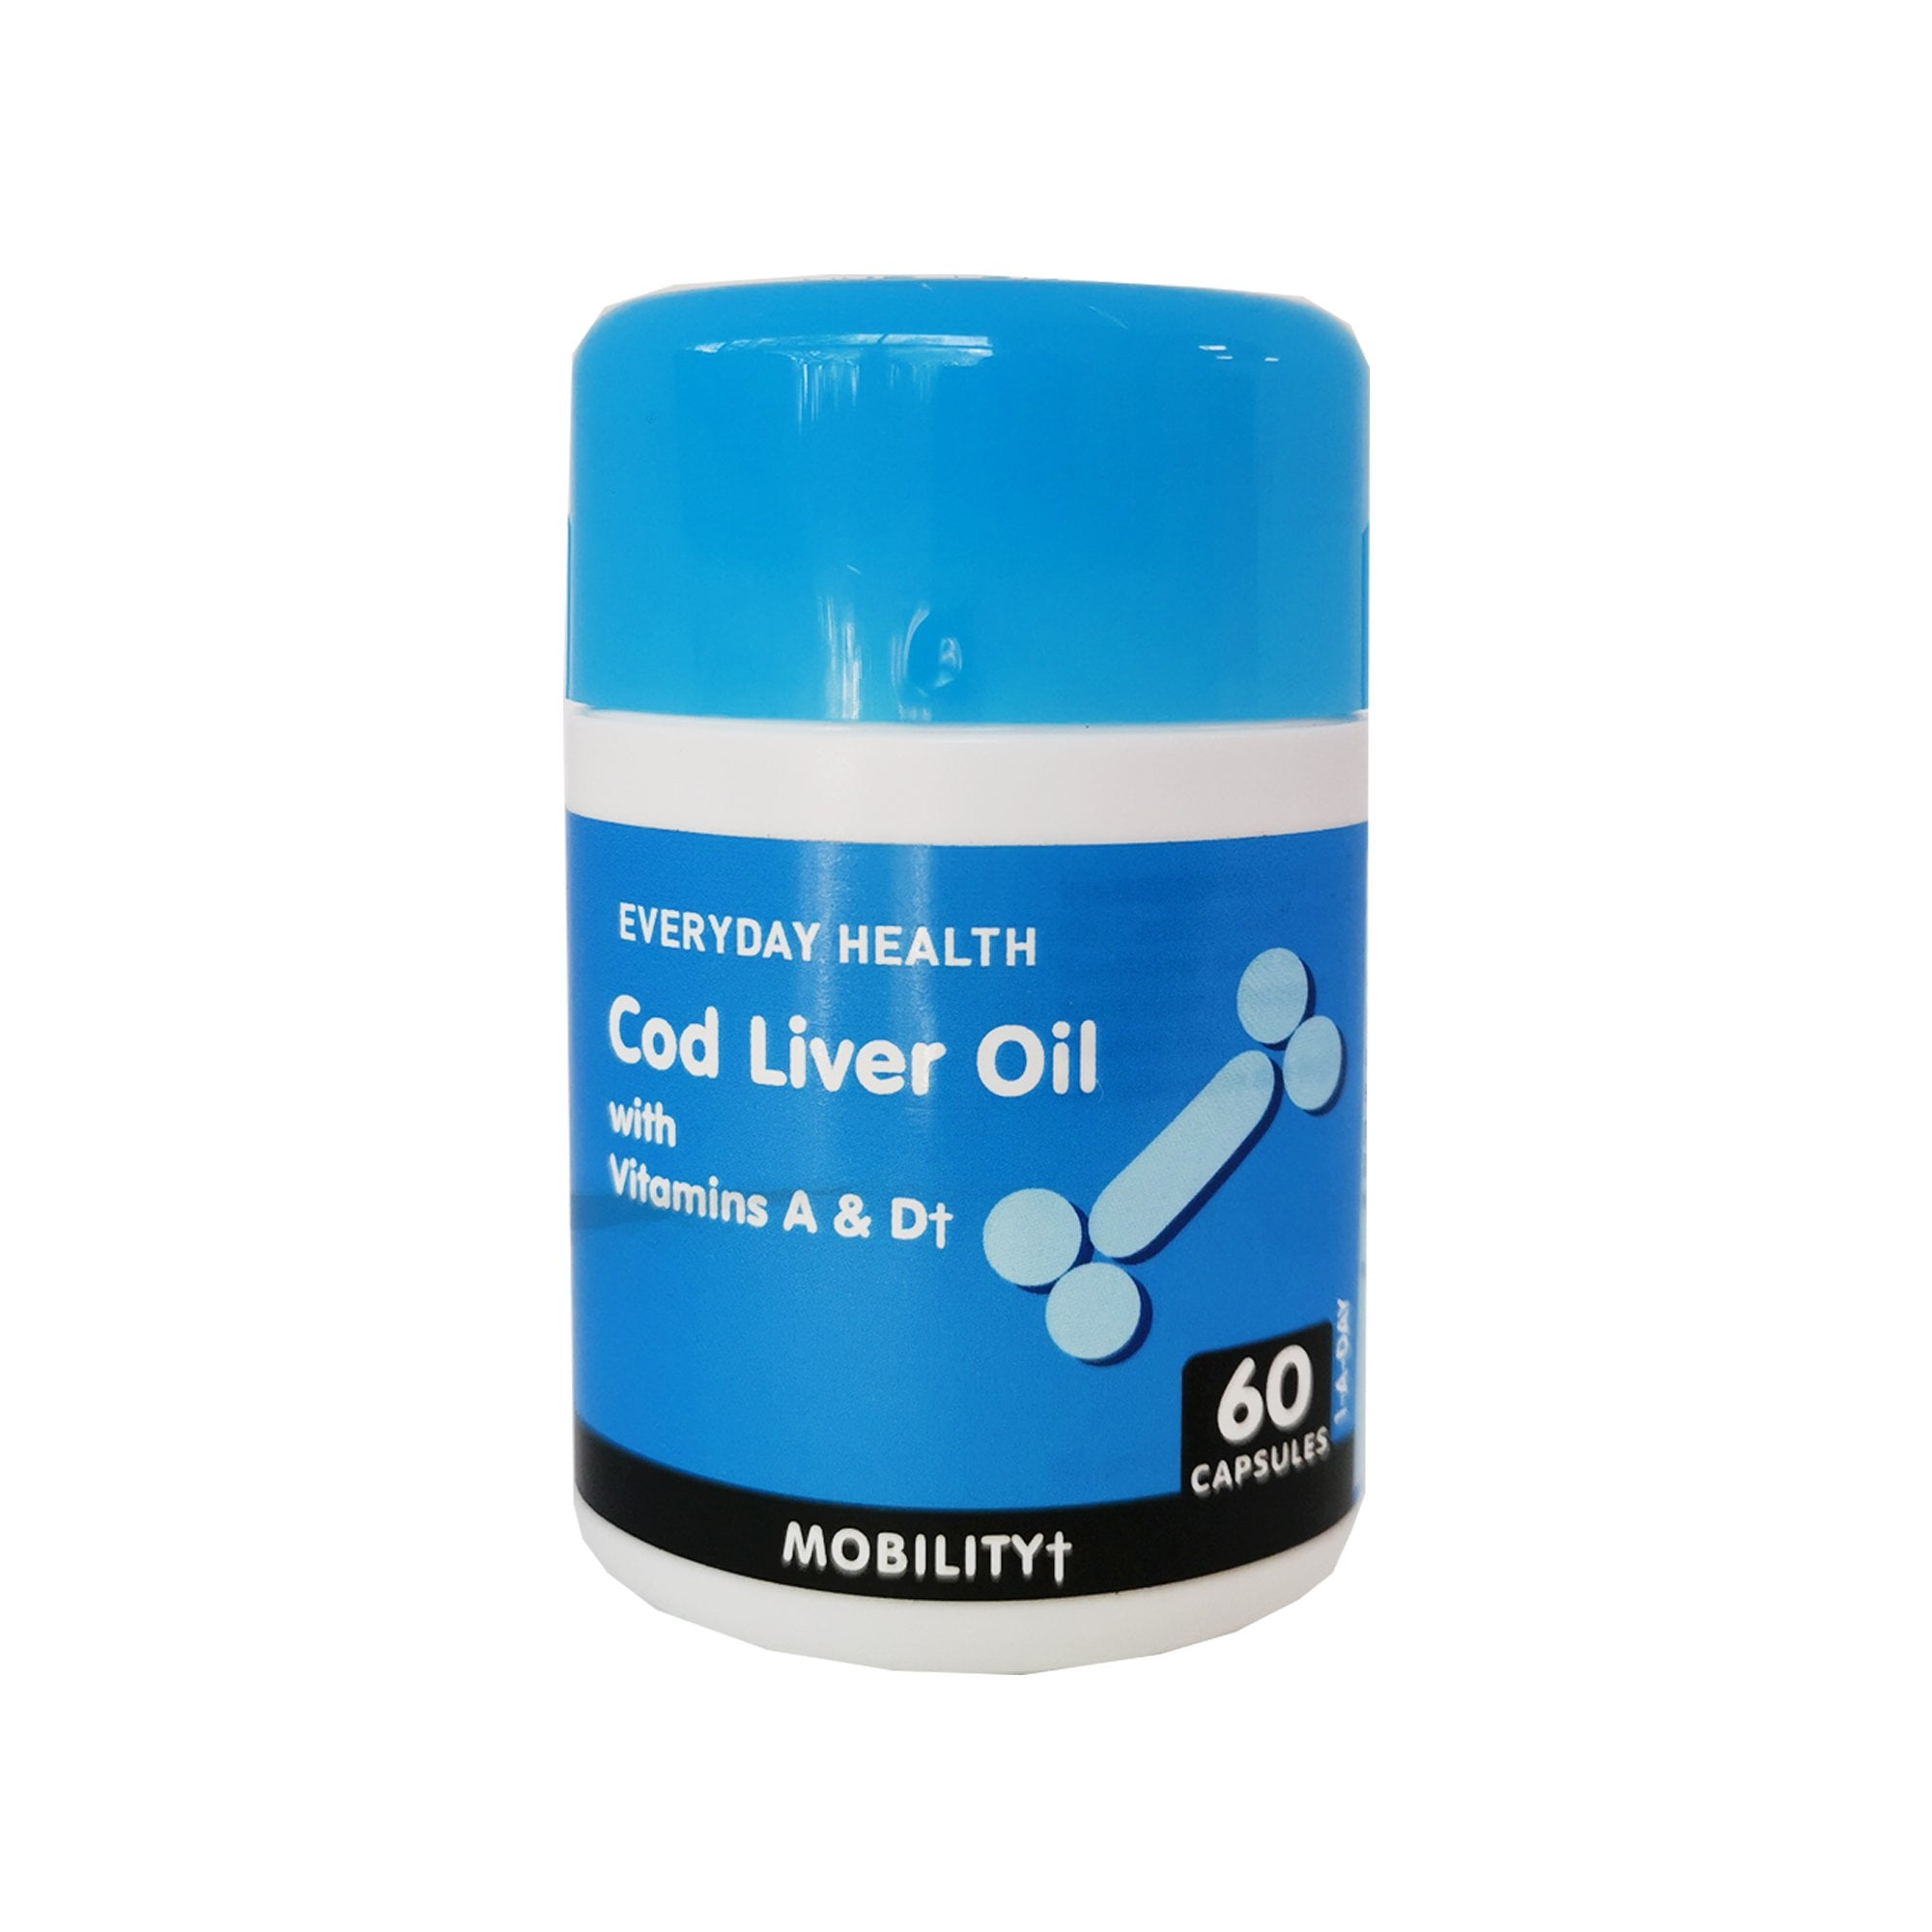 Everyday Health Cod Liver Oil 60's